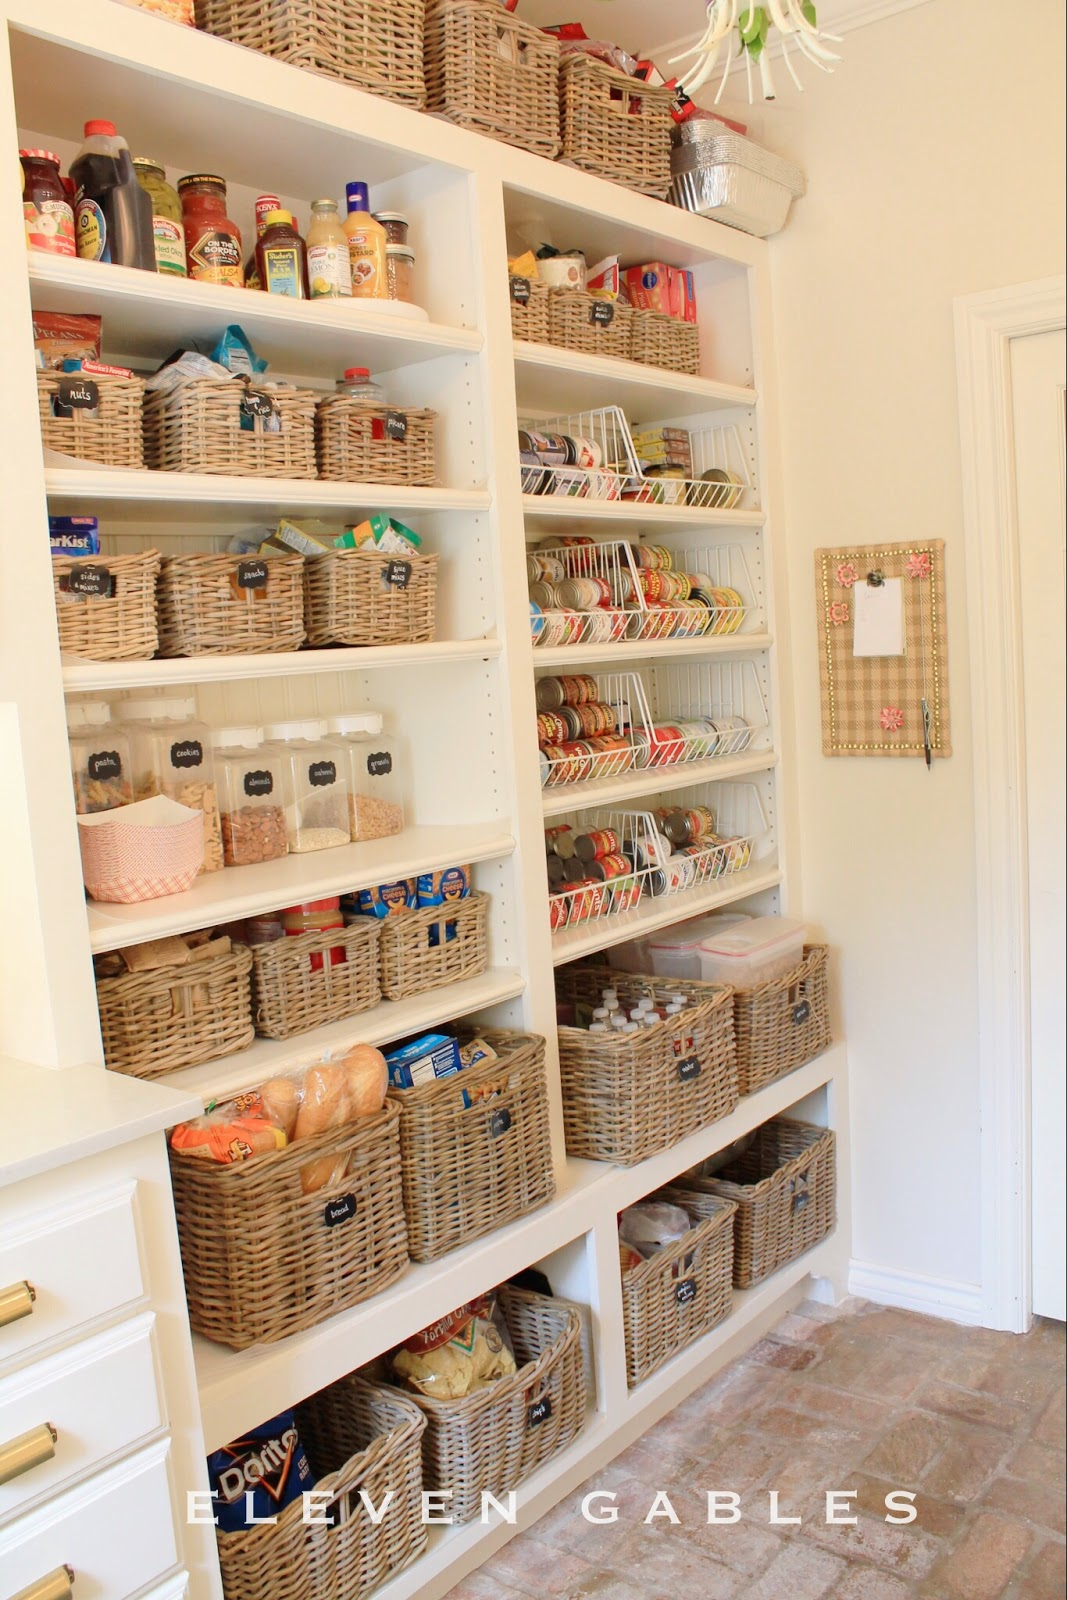 Eleven Gables Eleven Gables Laundry Butler 39 S Pantry